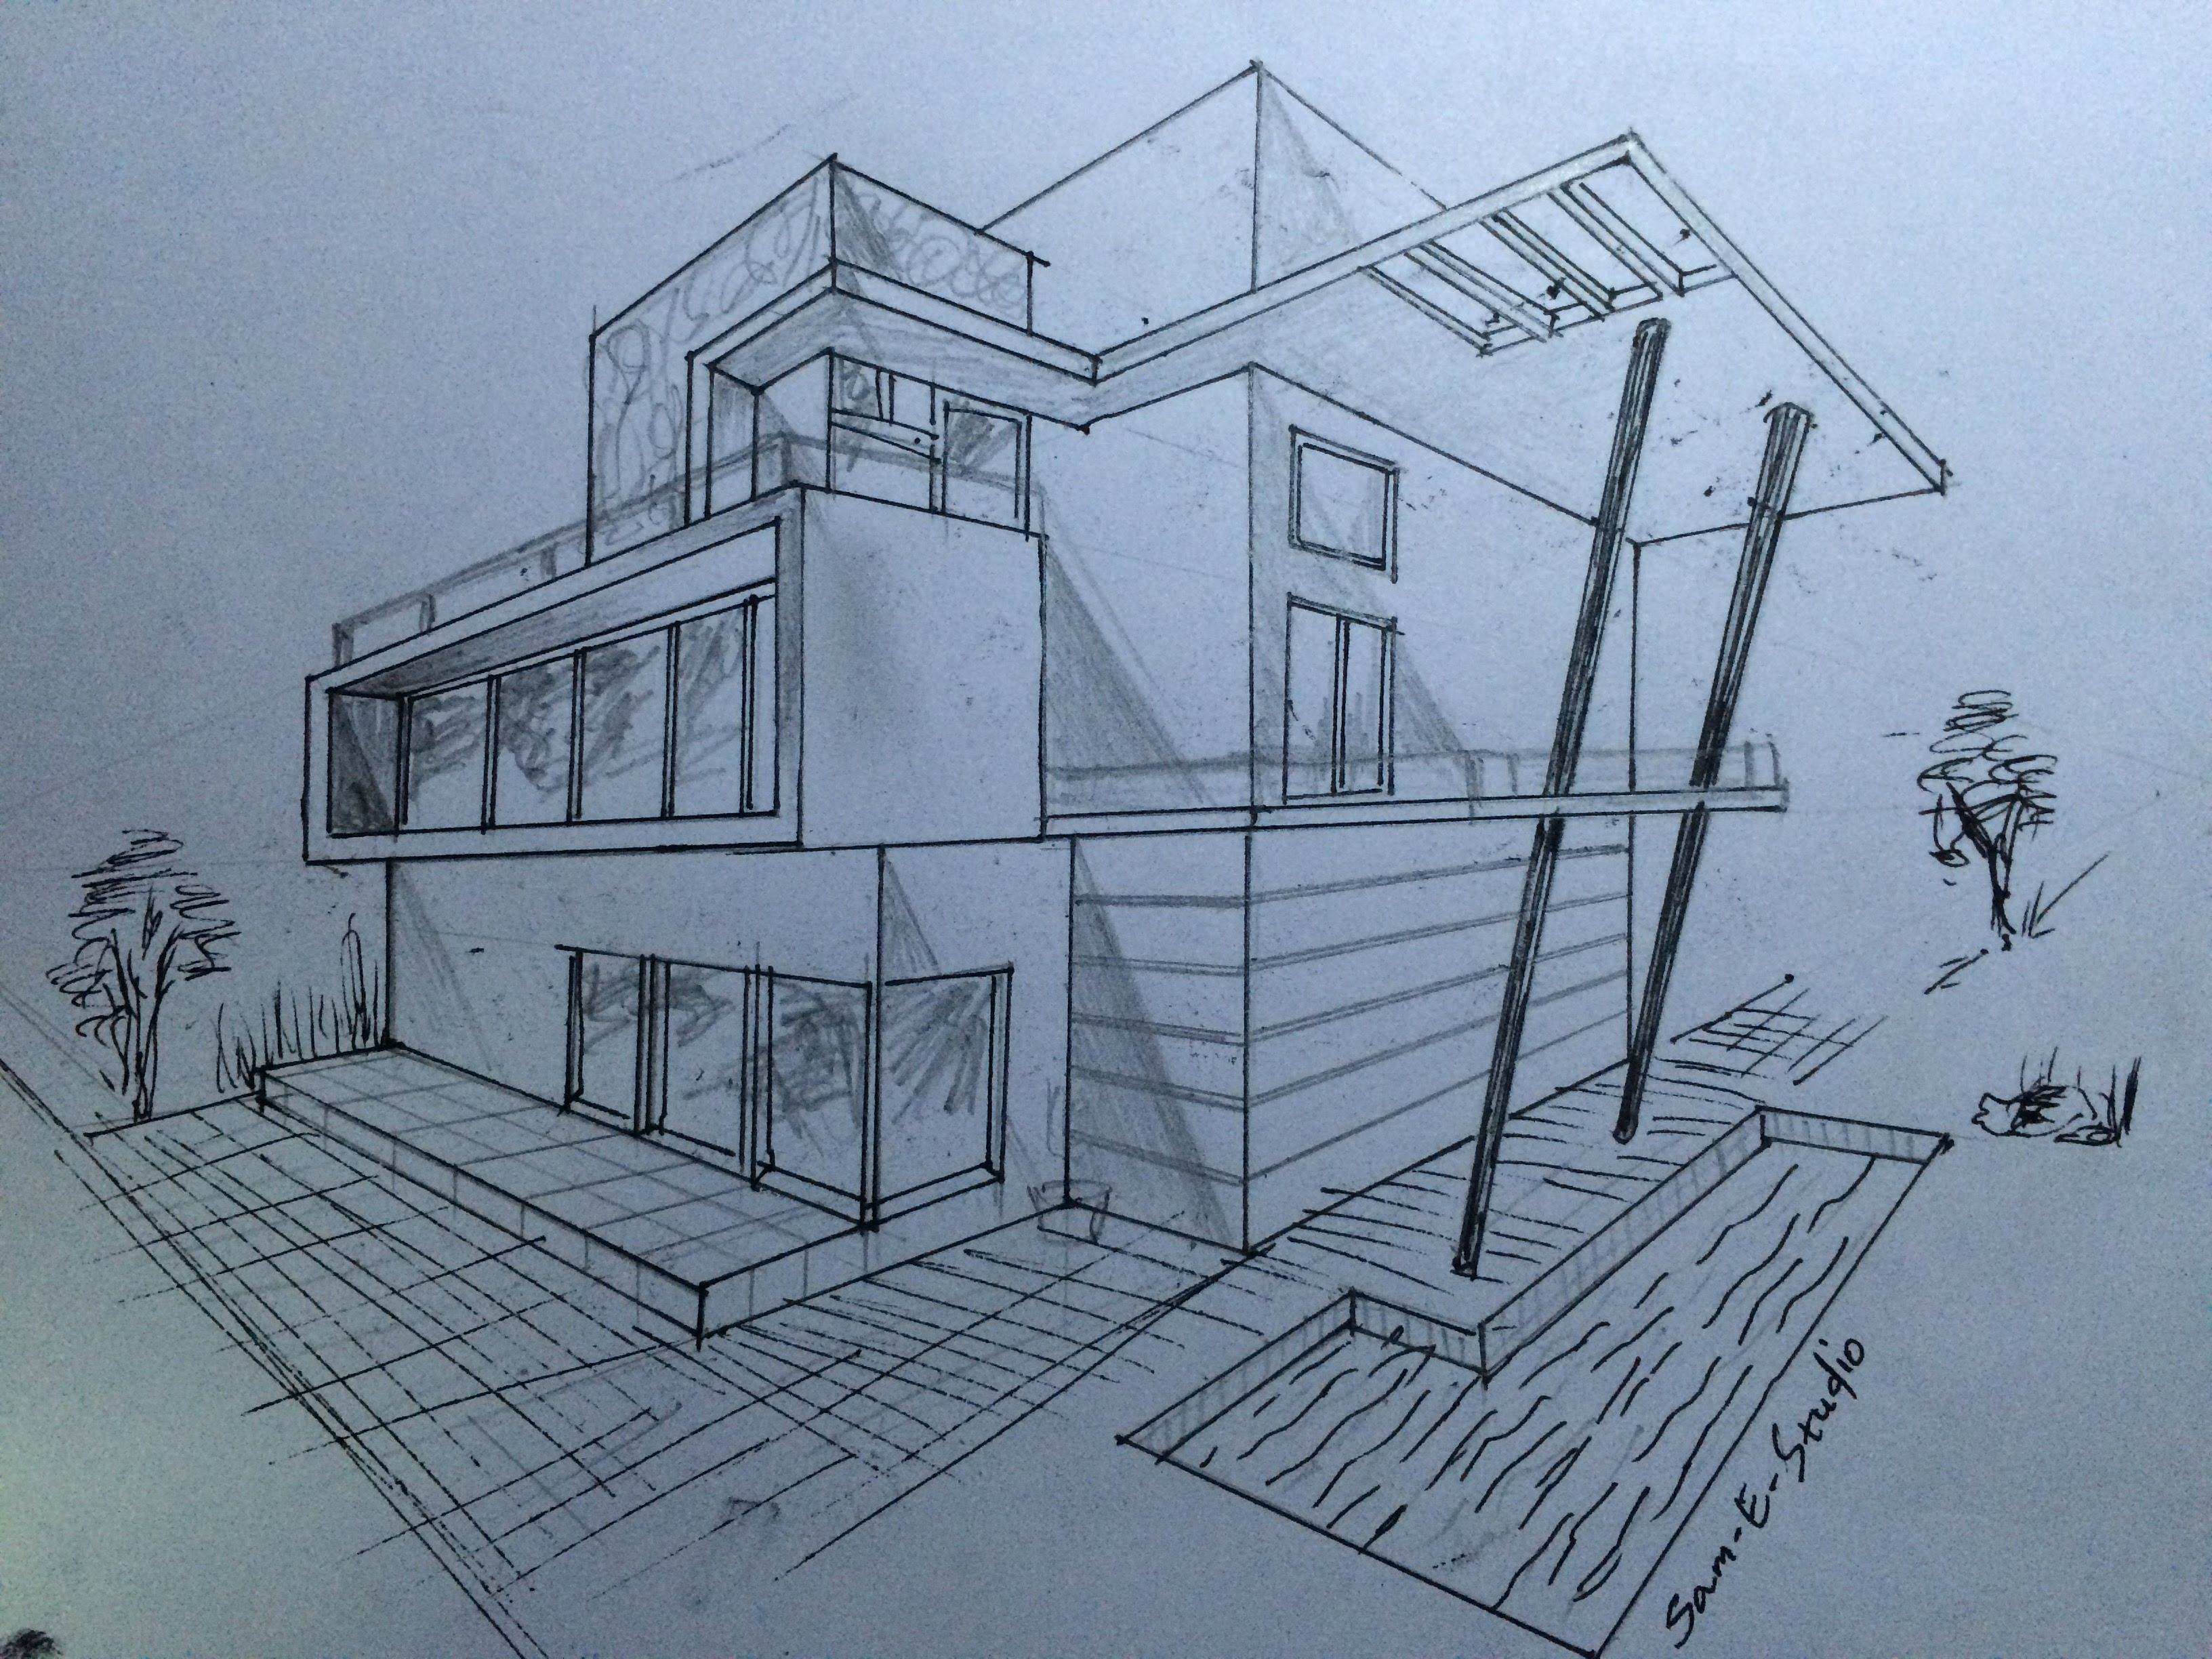 3264x2448 Architecture Modern House Design (2 Point Perspective View)